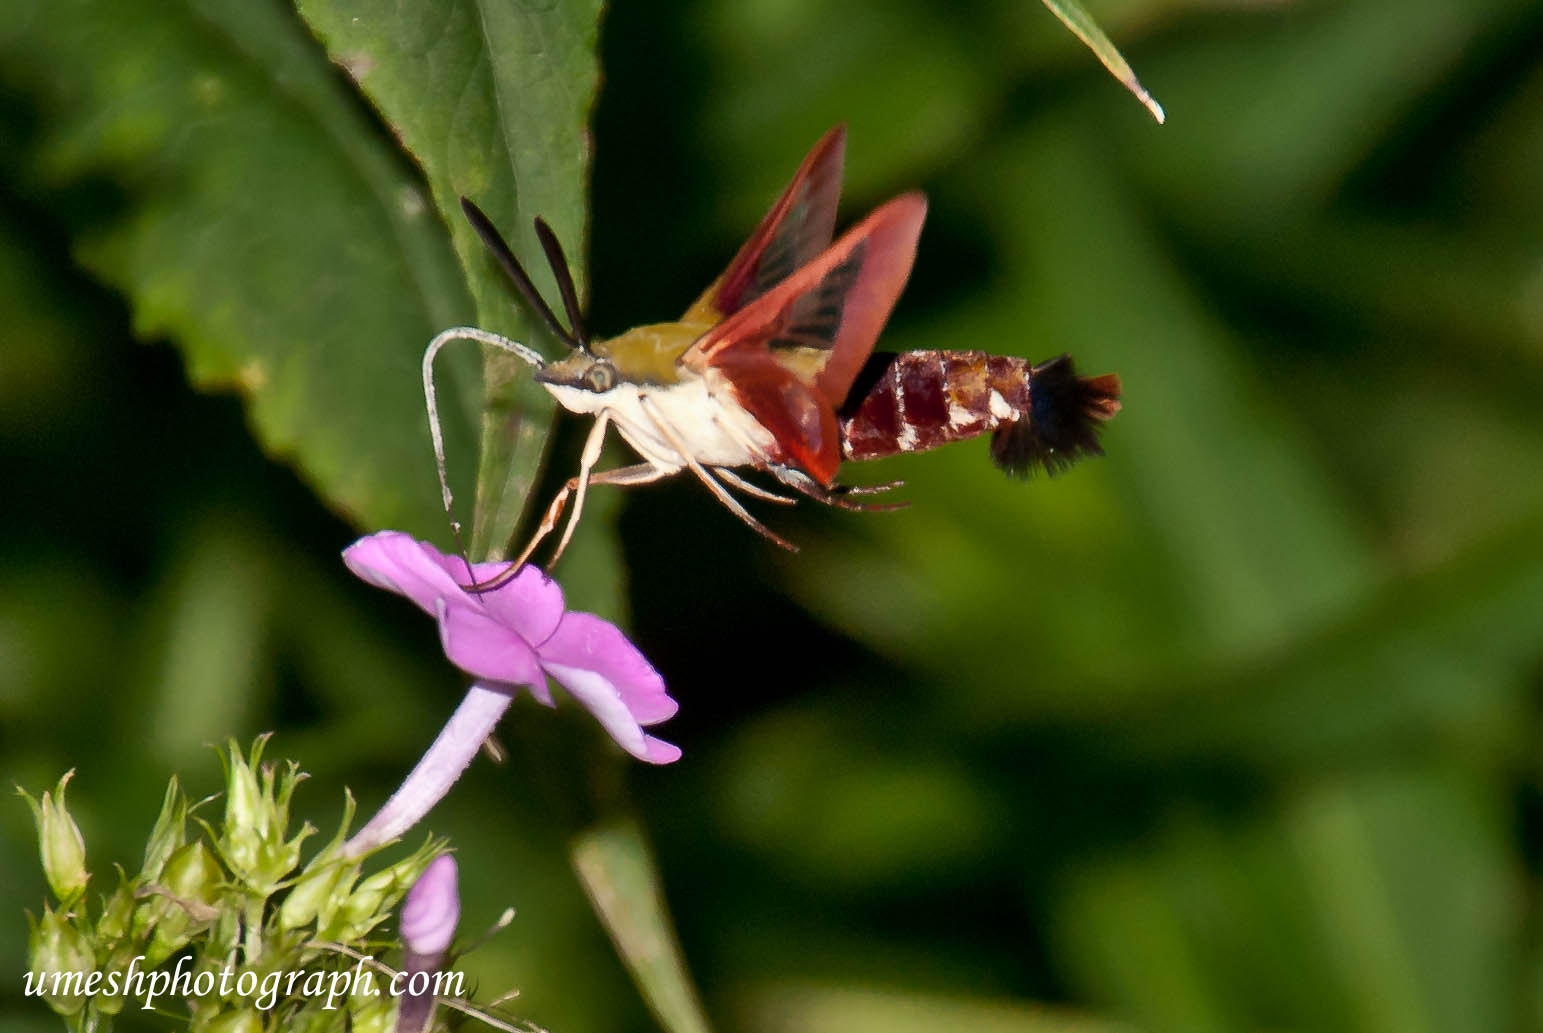 Photograph Insects by Umesh Photograph on 500px